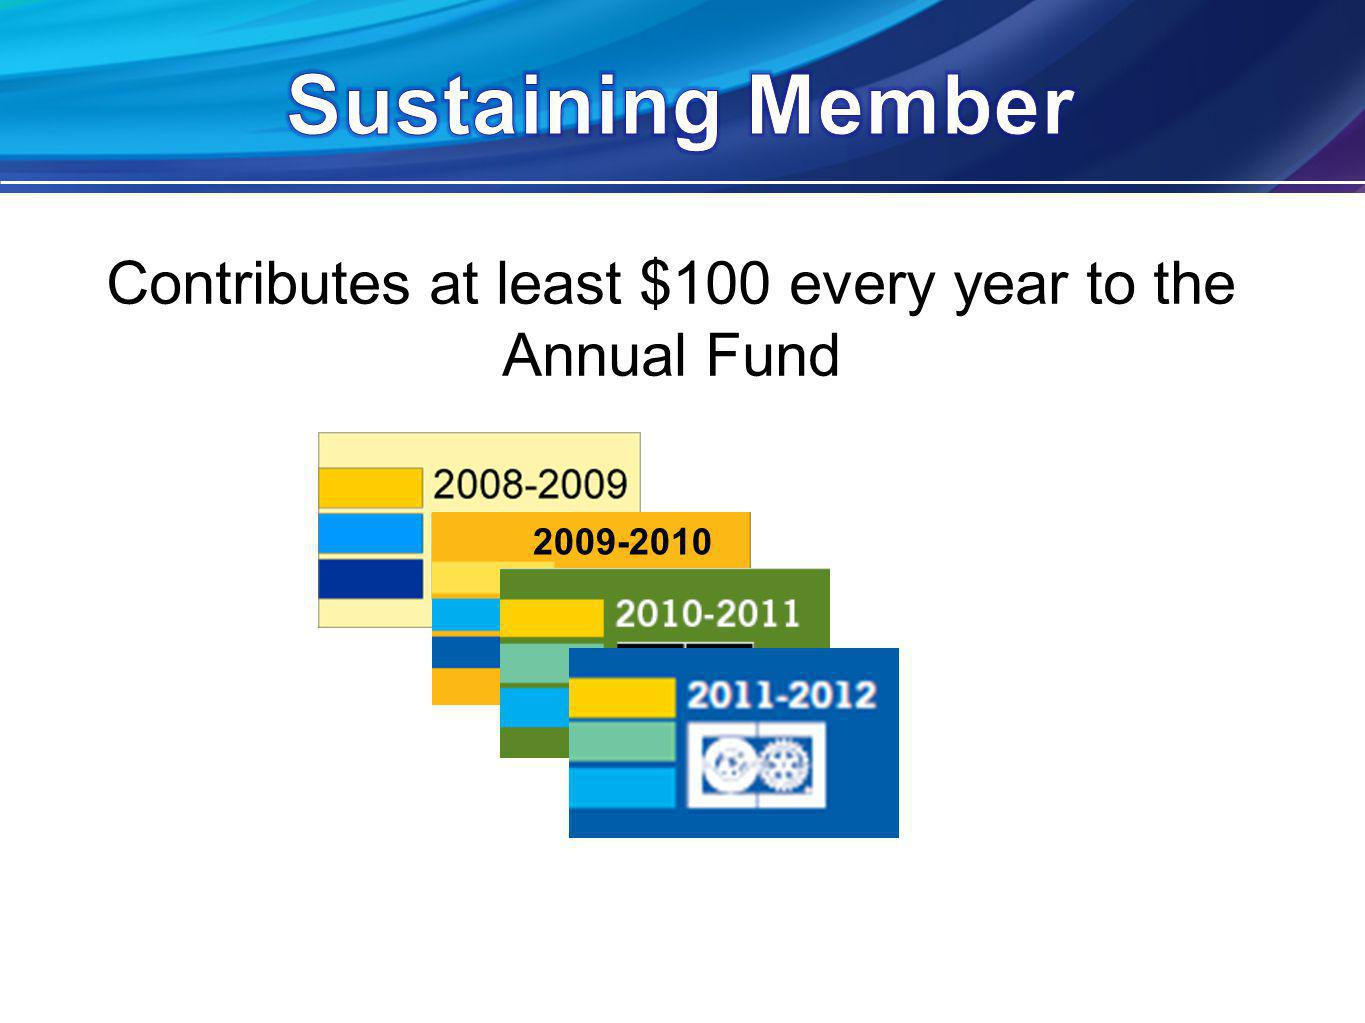 Contributes at least $100 every year to the Annual Fund 2009-2010